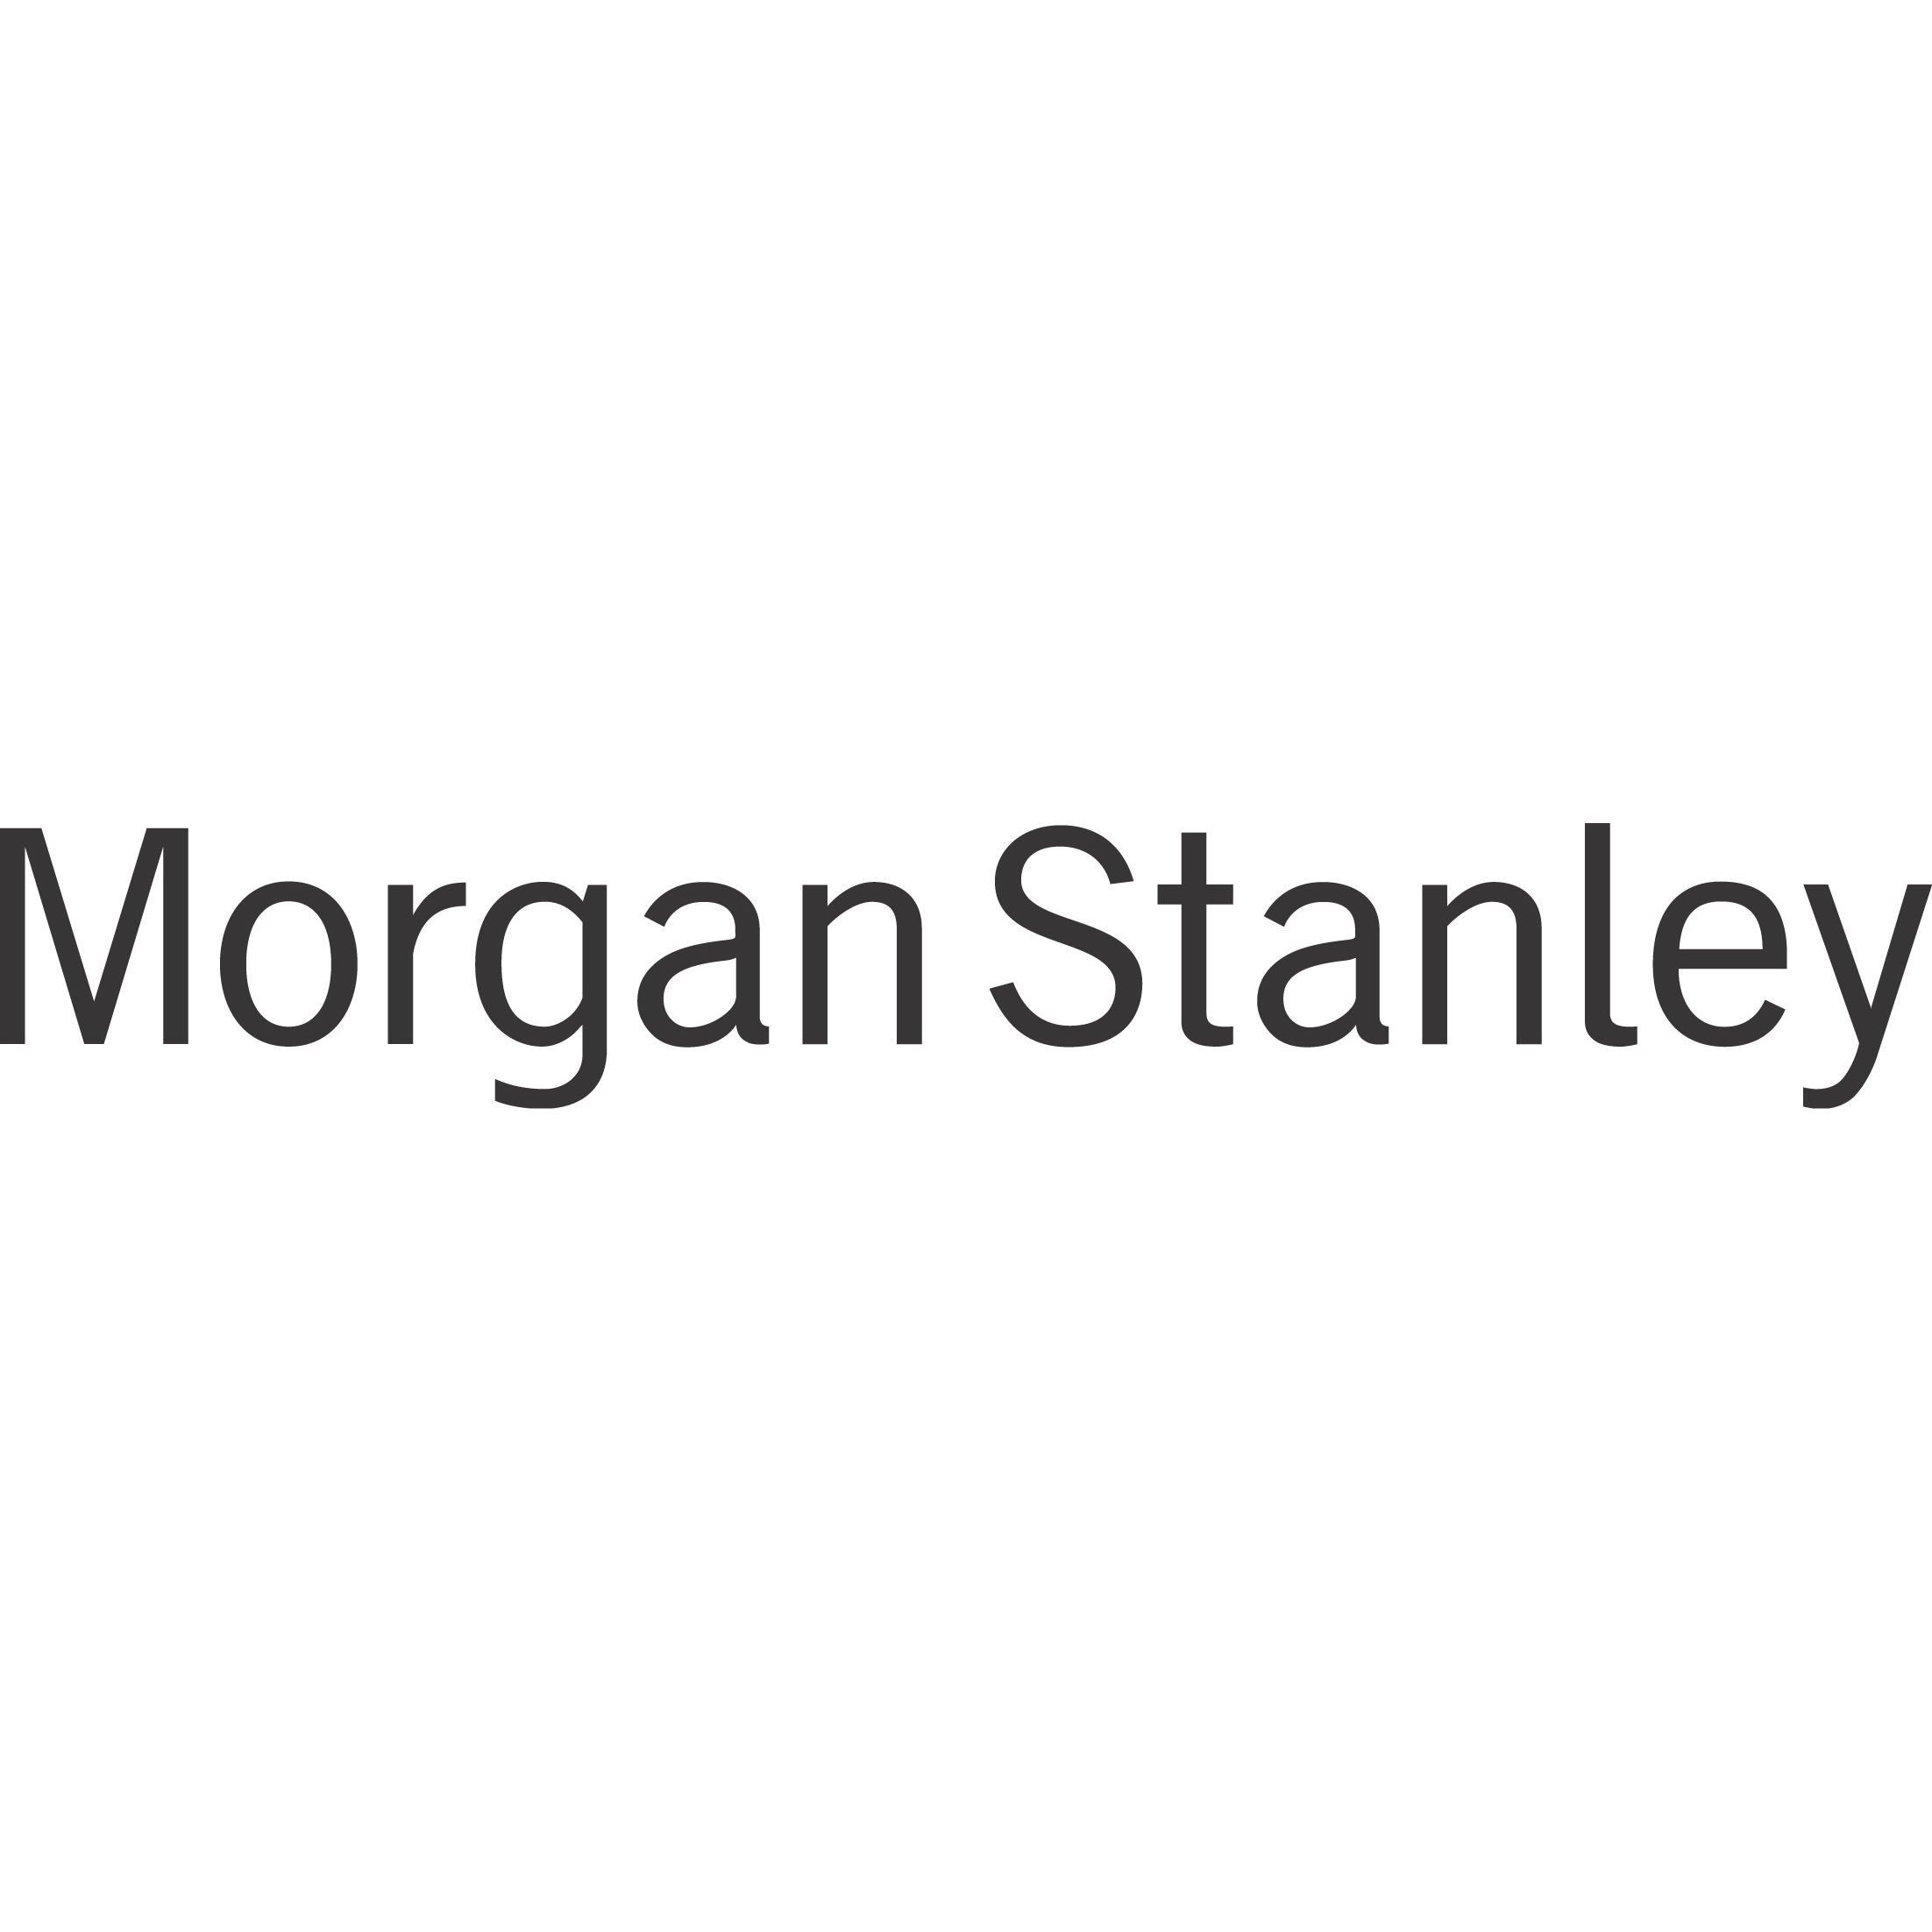 Kristen Kaczmark - Morgan Stanley | Financial Advisor in San Rafael,California